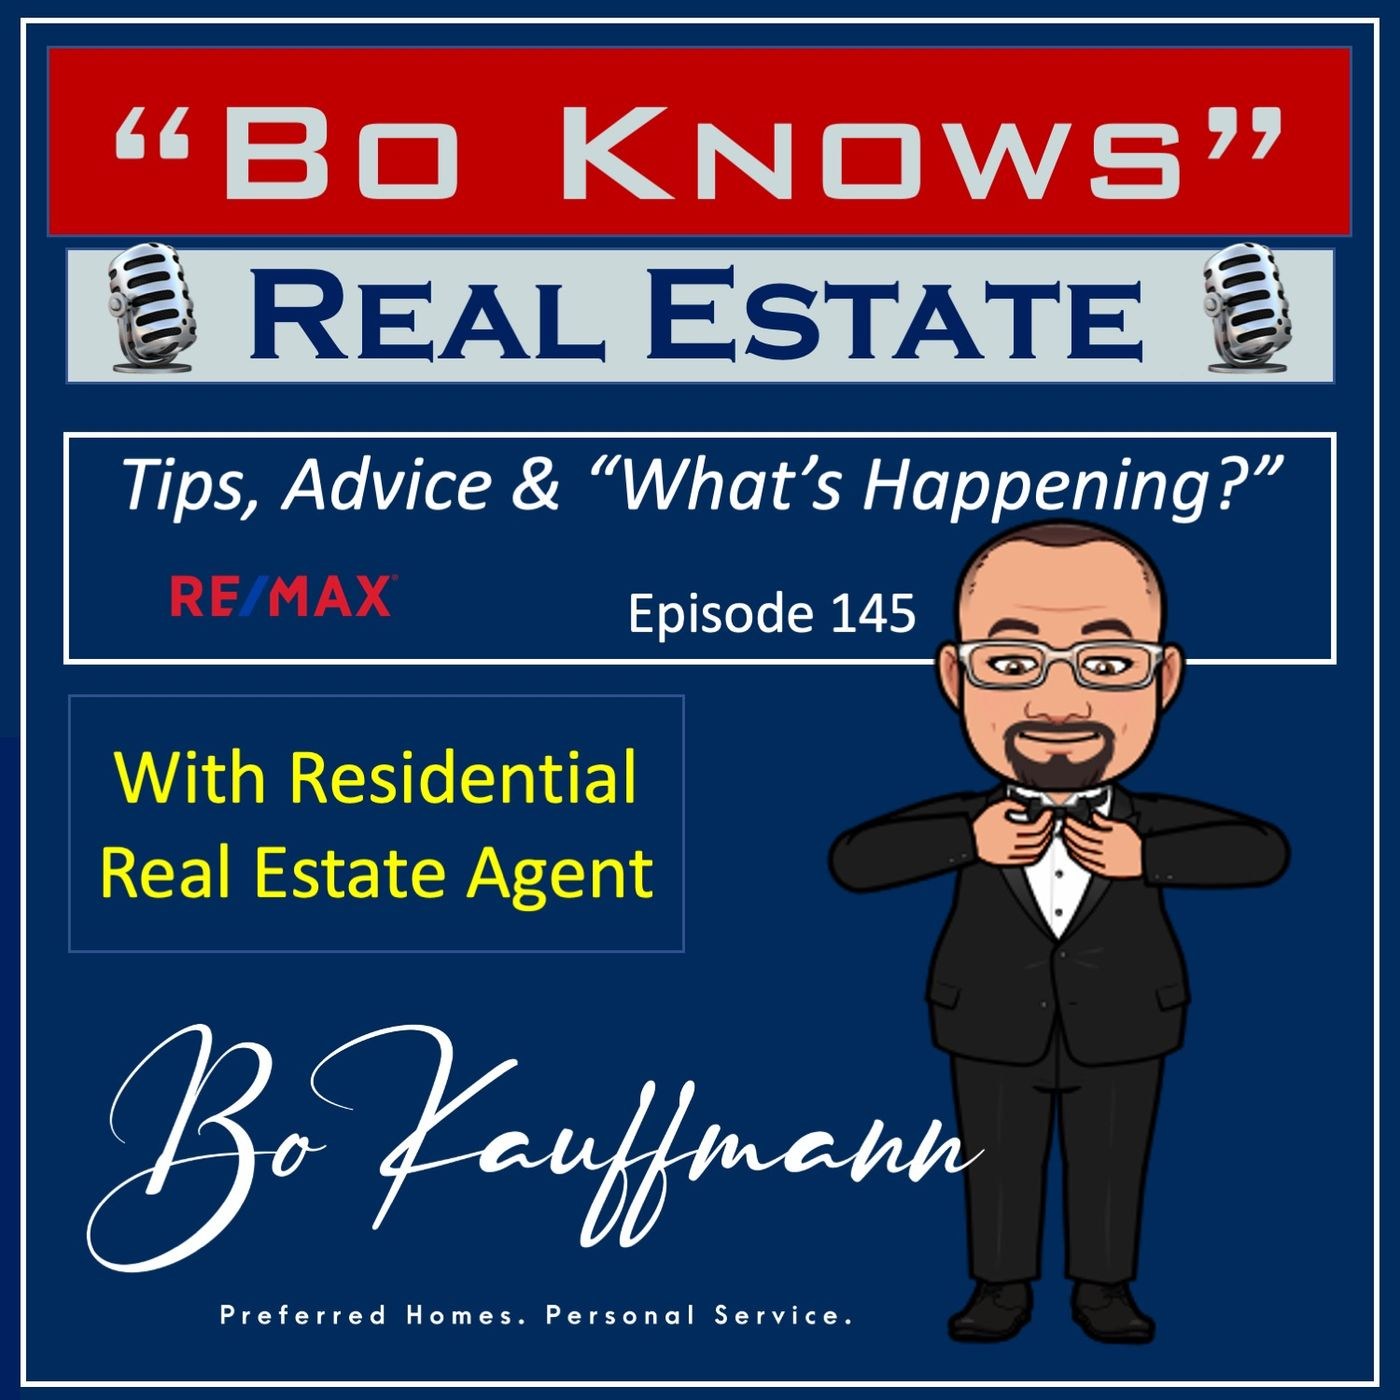 (EP: 145) Luxury Homes Market - Interview with Luxury Home Real Estate Agent